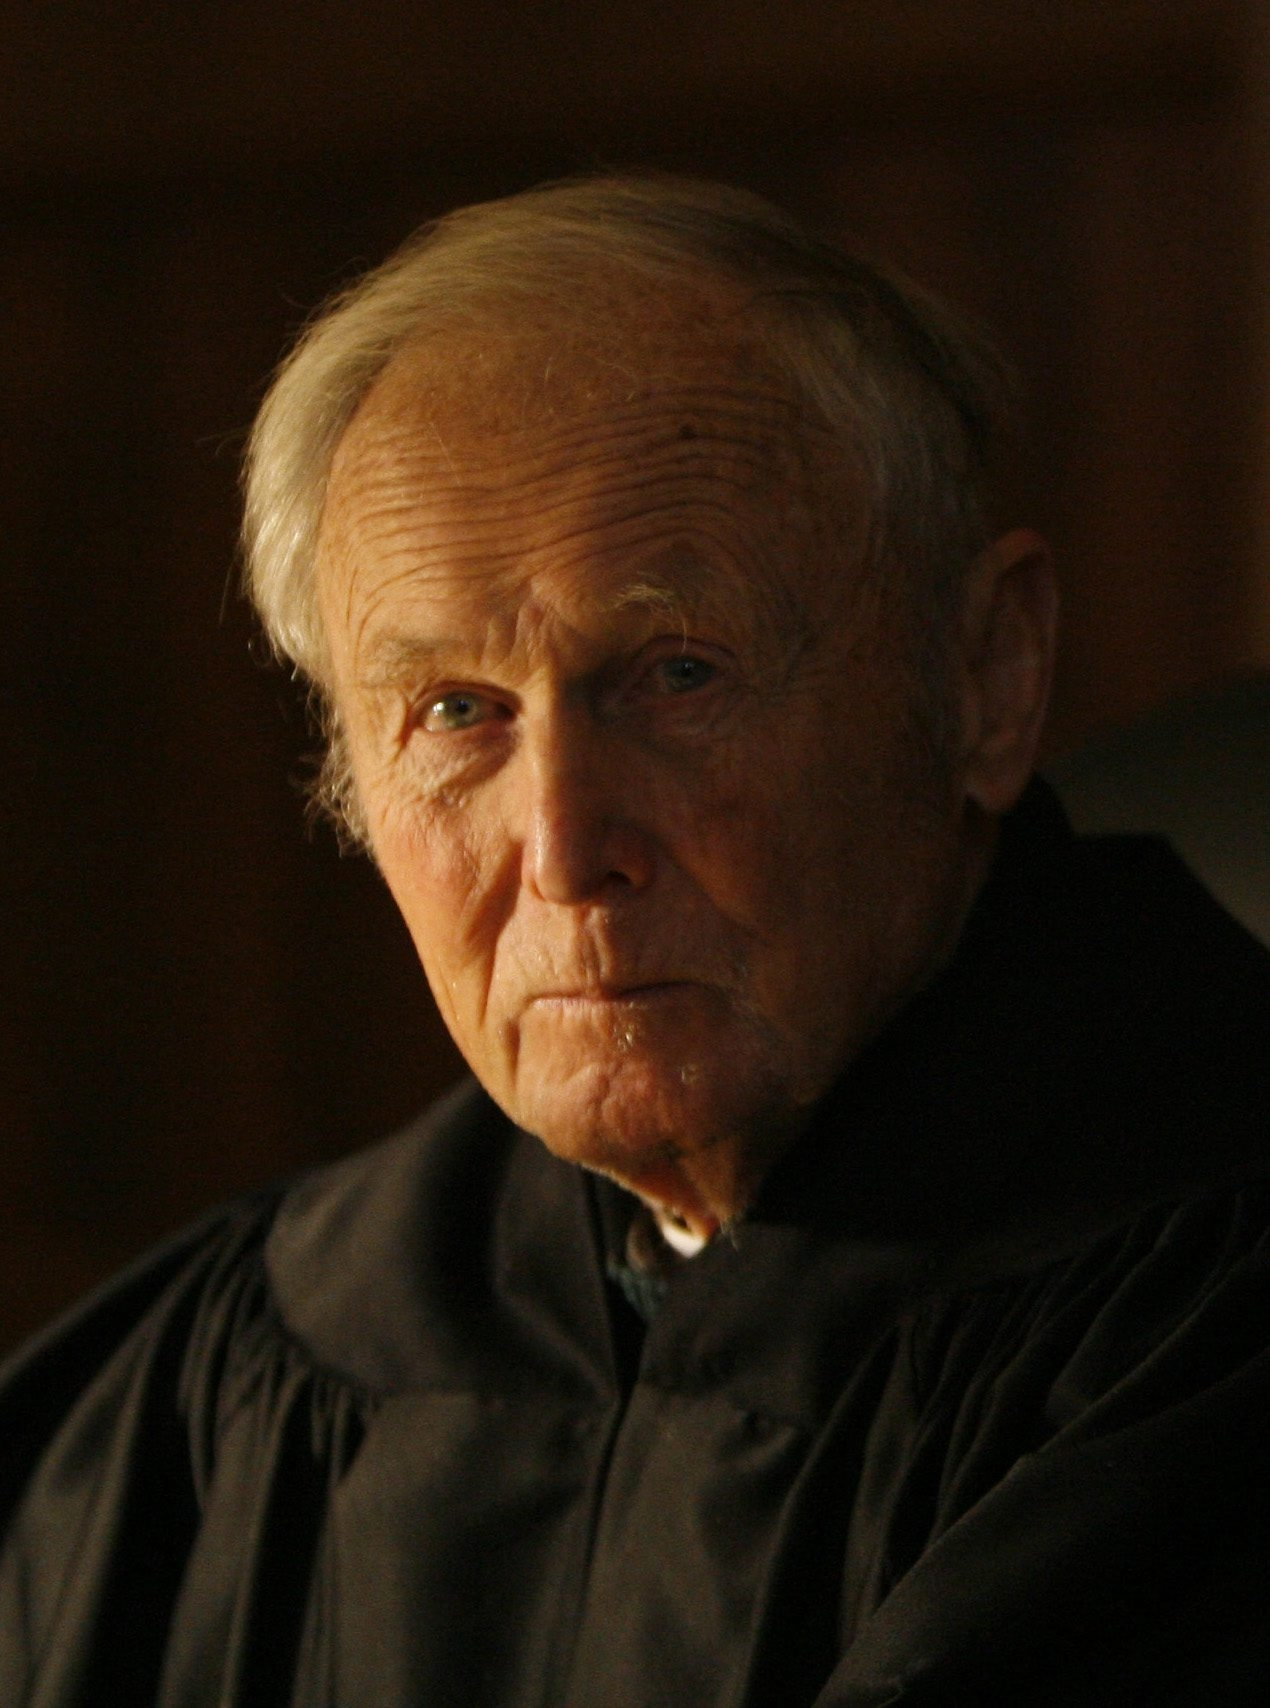 Judge John T. Curtin is being asked to stop su- pervision tied to suit.